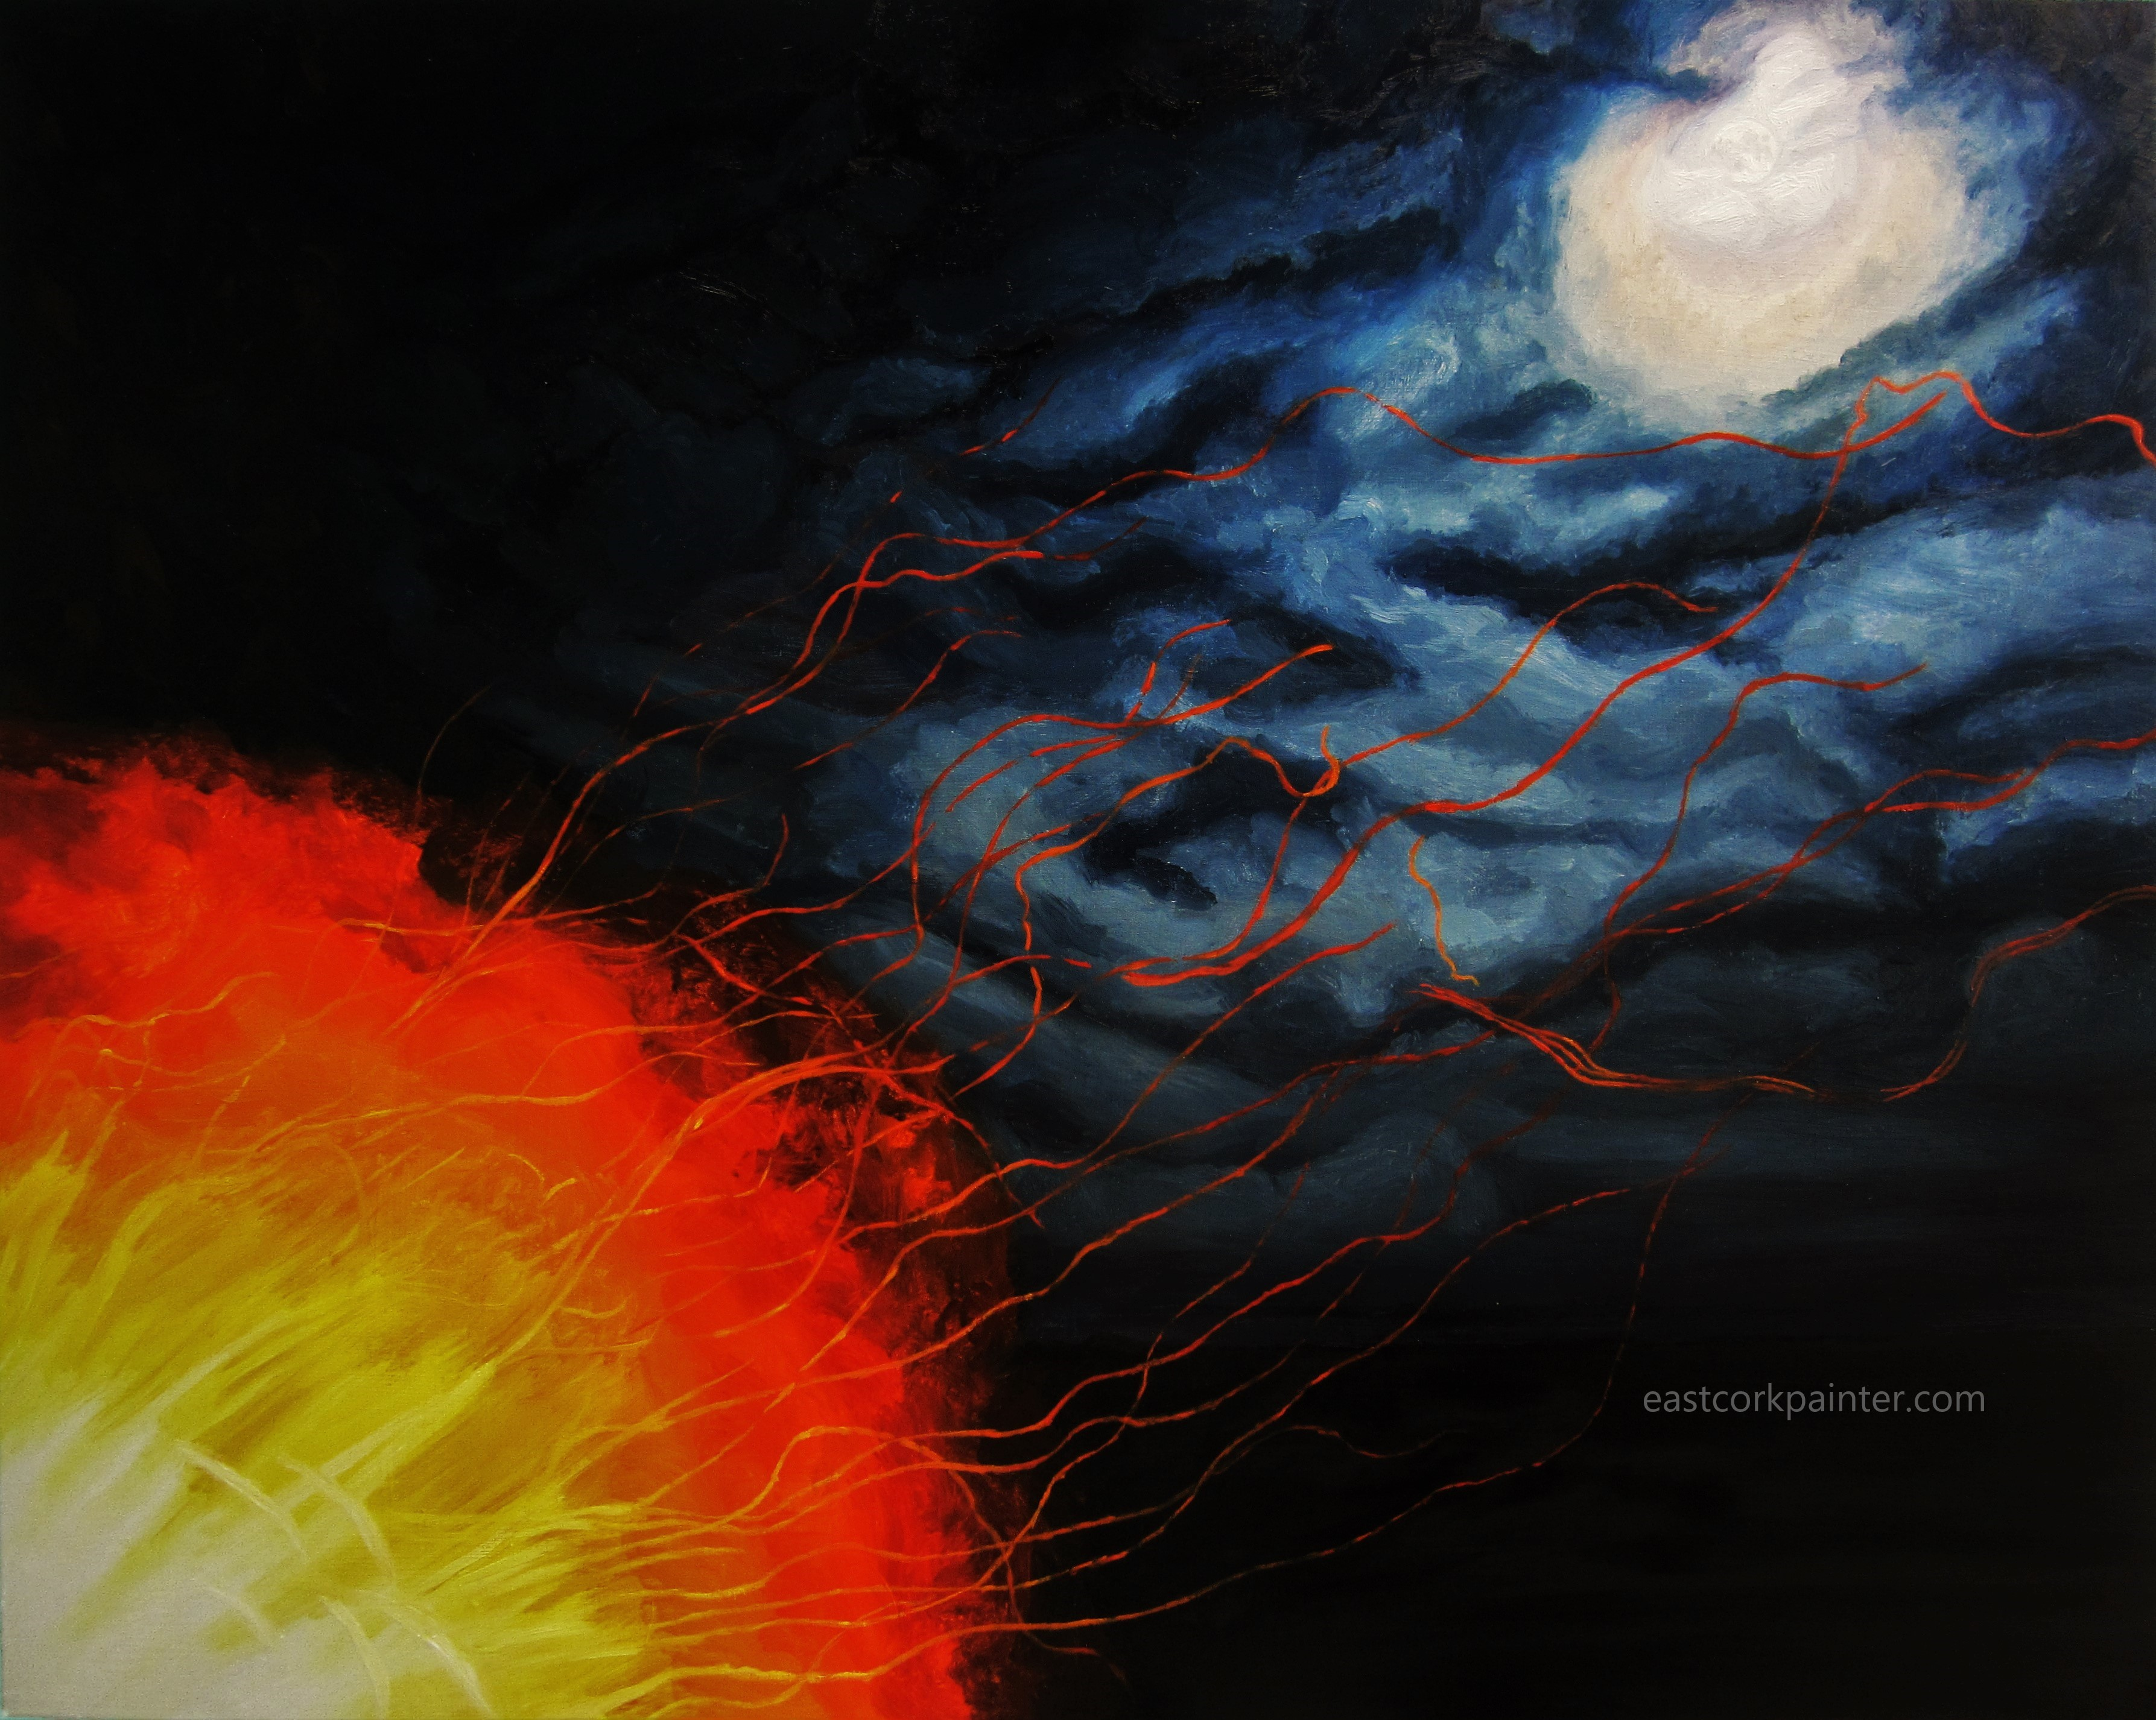 Bonfire Ember Trails and Moonlight watermark